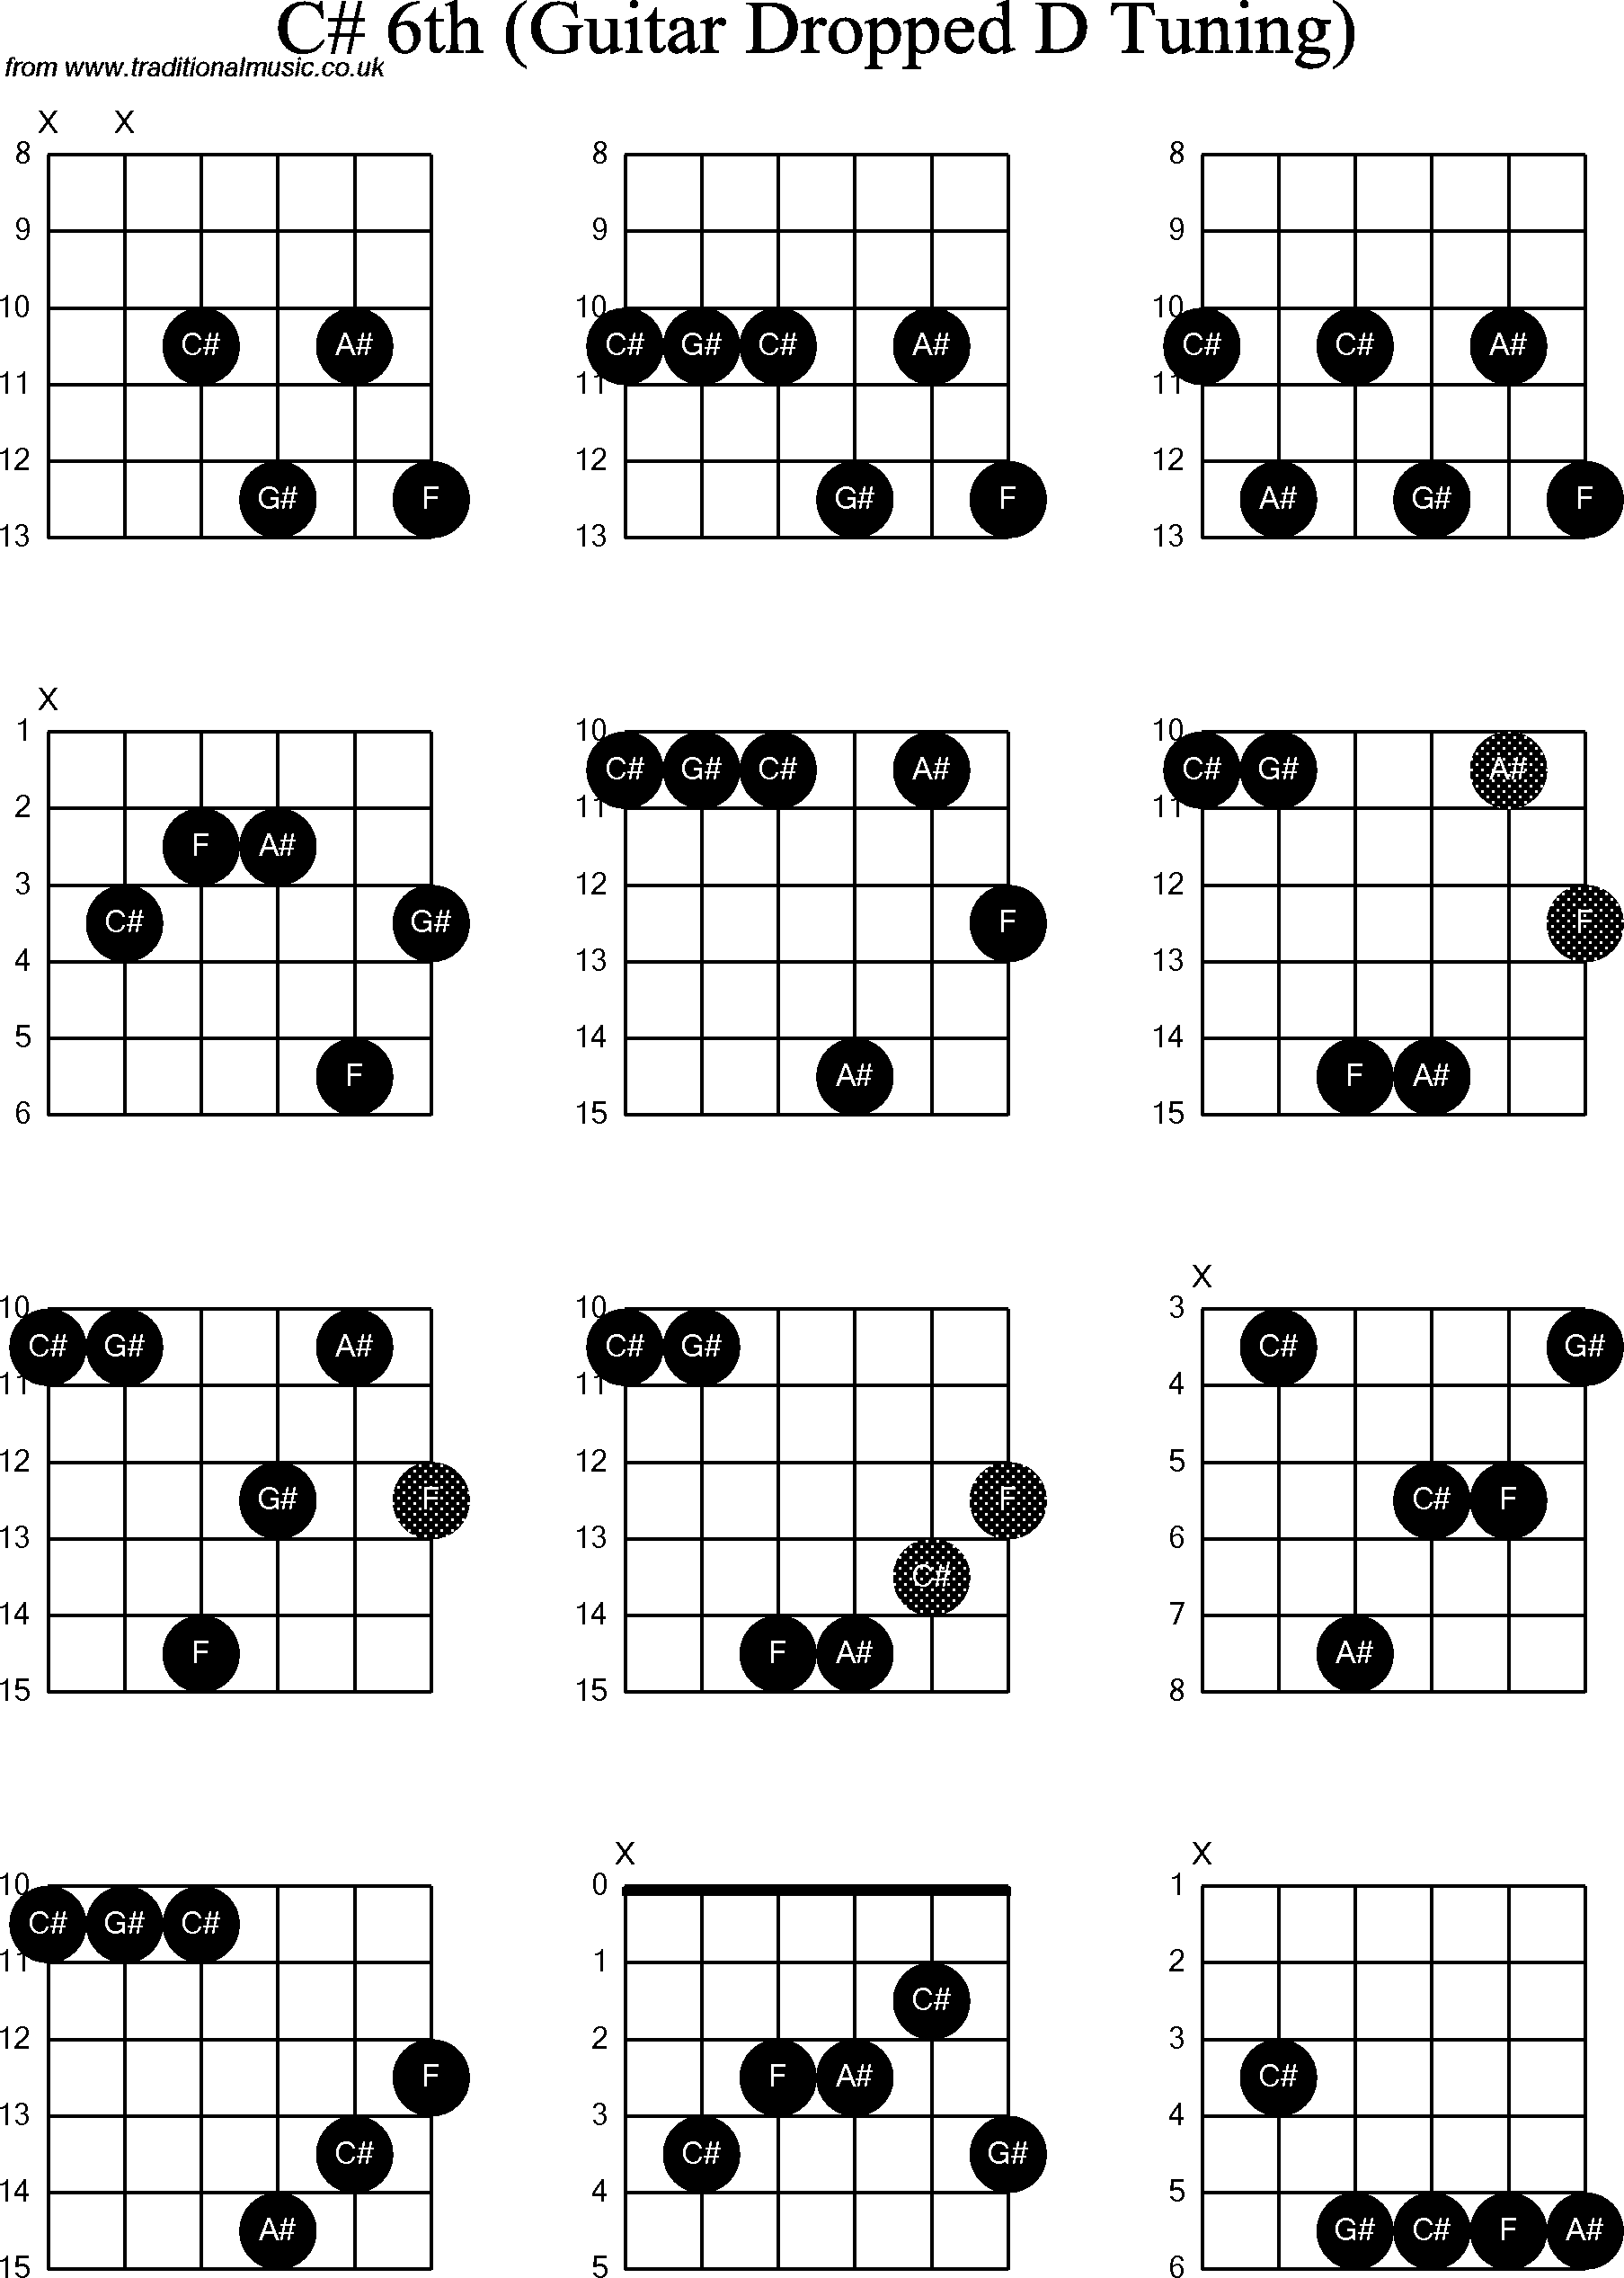 chord diagrams for dropped d guitar dadgbe   c sharp6th